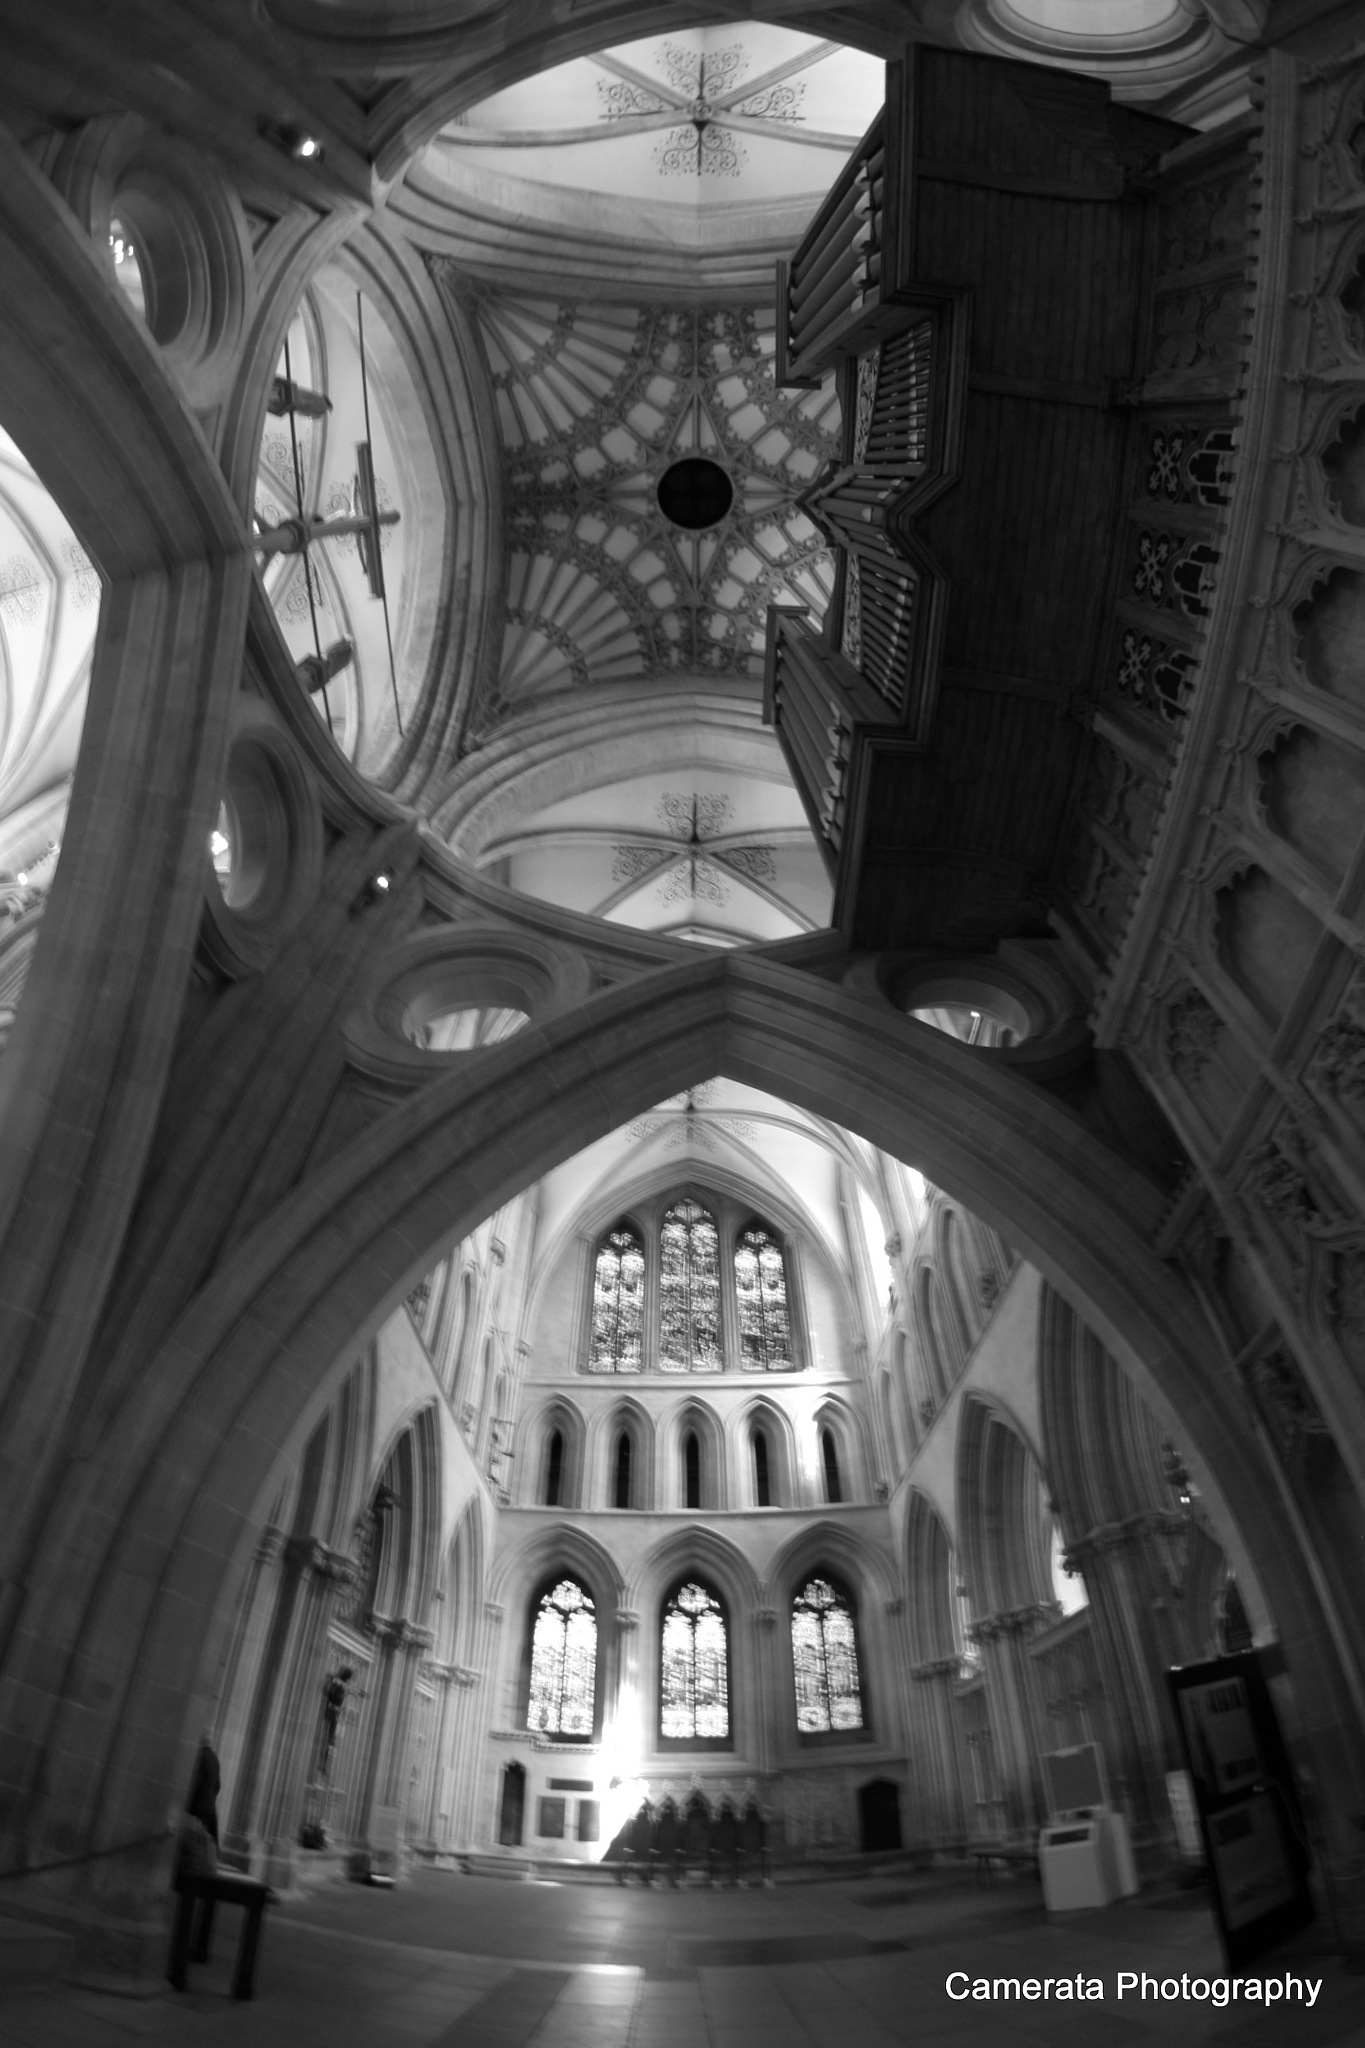 The Organ - Wells Cathedral Interior by Naomi Caunce